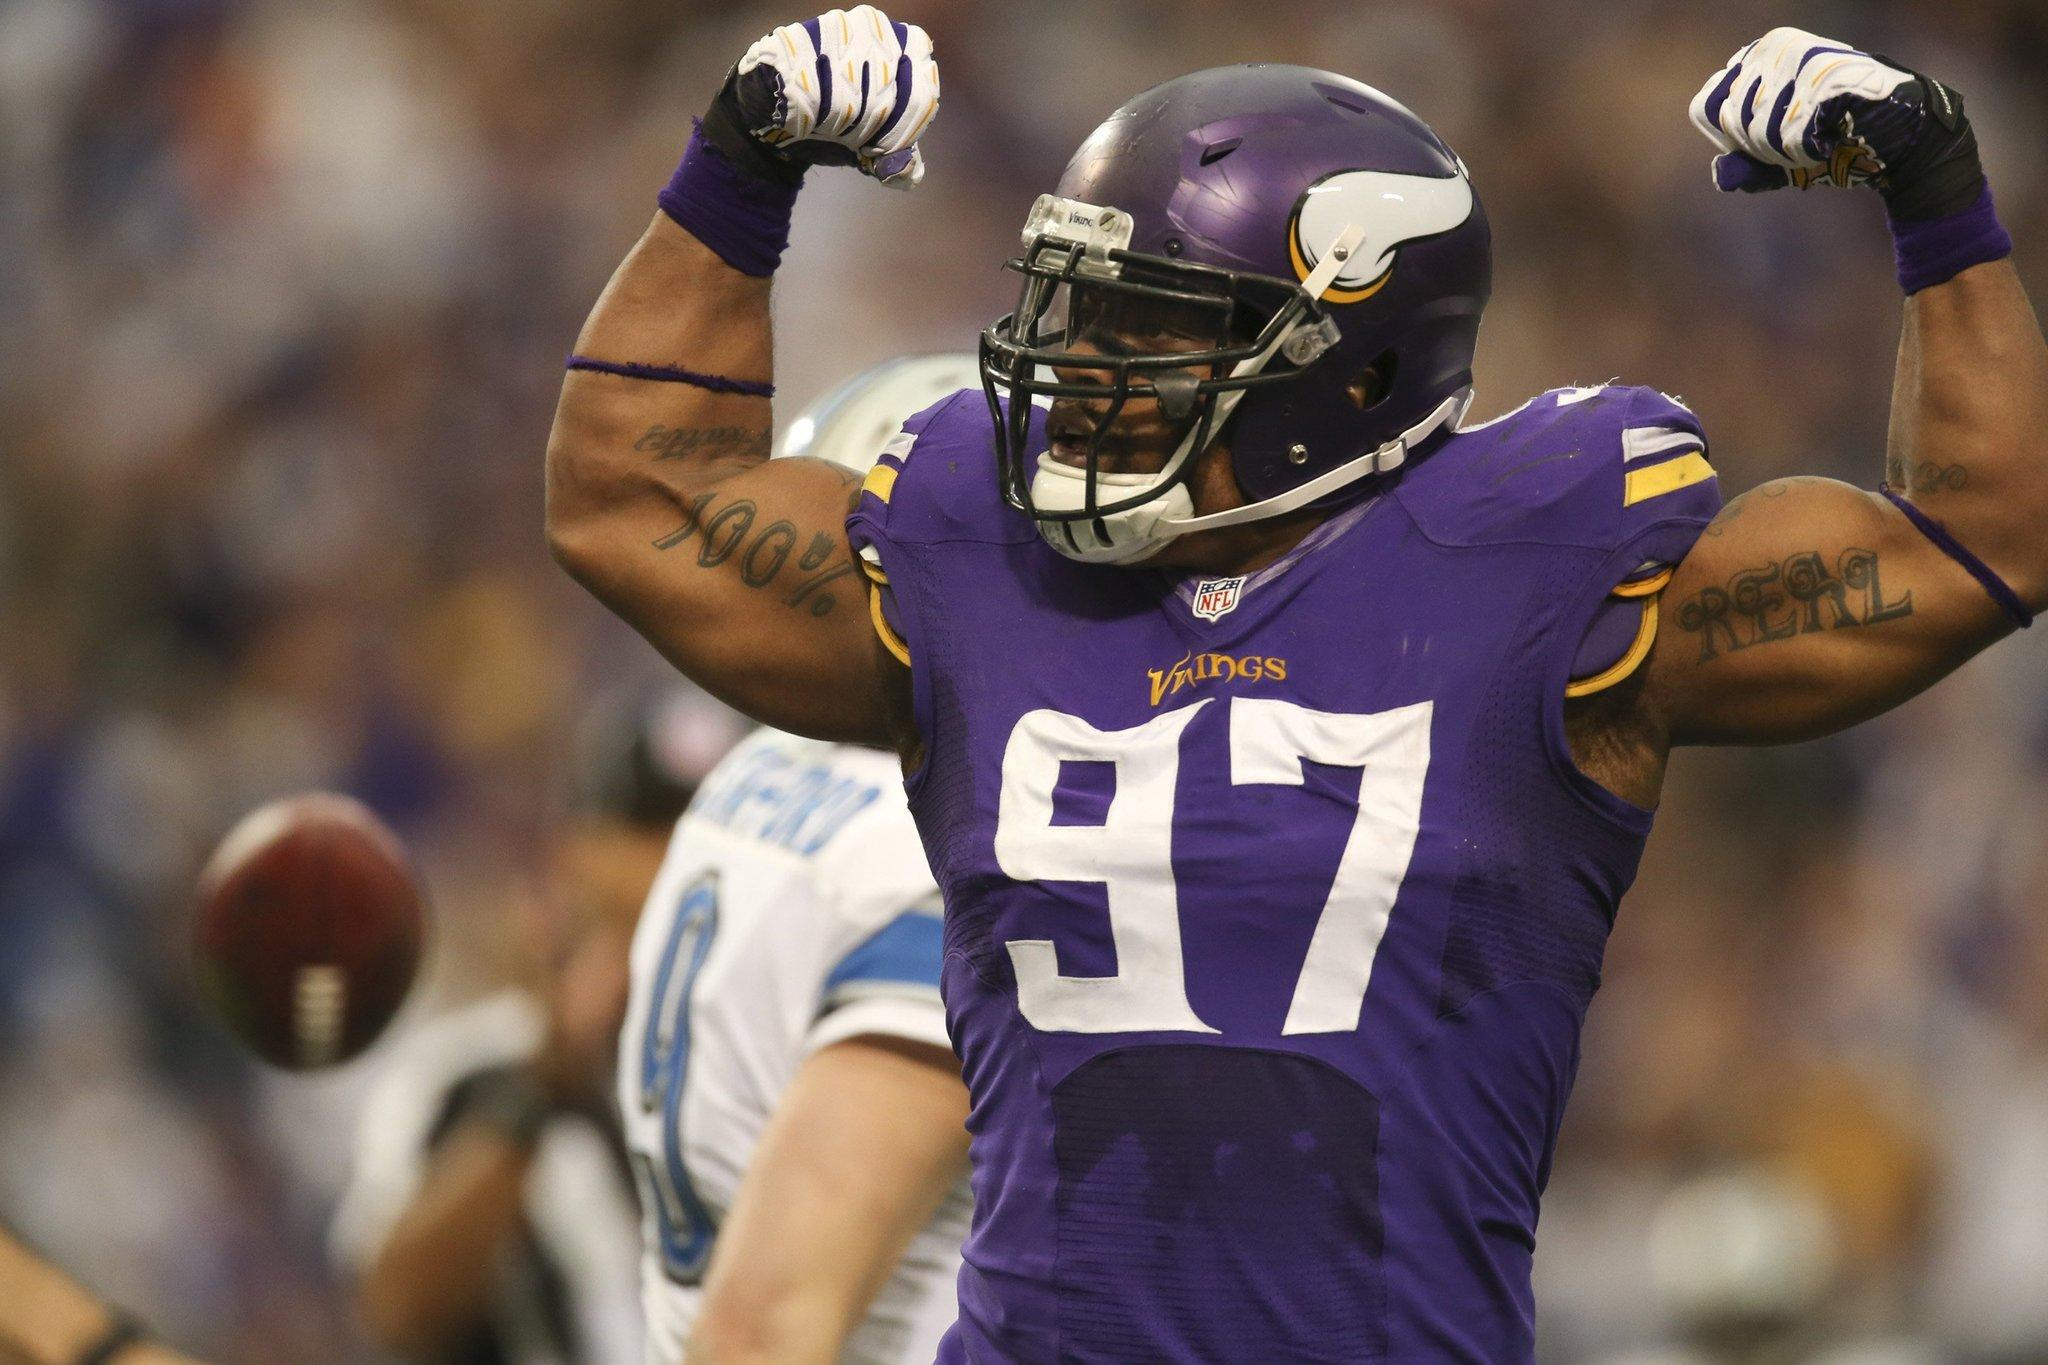 Minnesota Vikings defensive end Everson Griffen celebrates a sack.